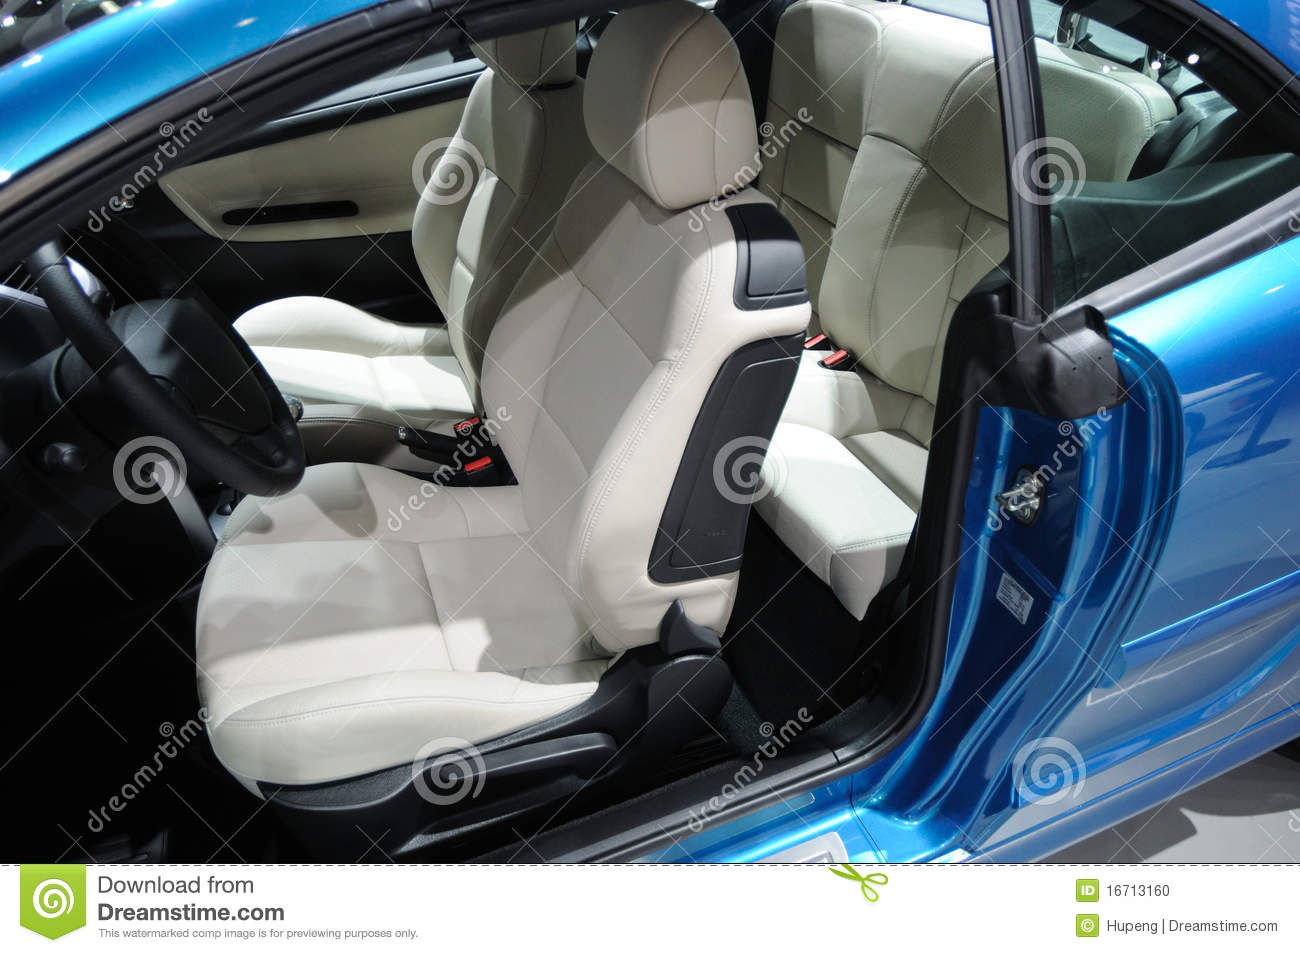 blue peugeot 207cc sport car interior stock photo image 16713160. Black Bedroom Furniture Sets. Home Design Ideas